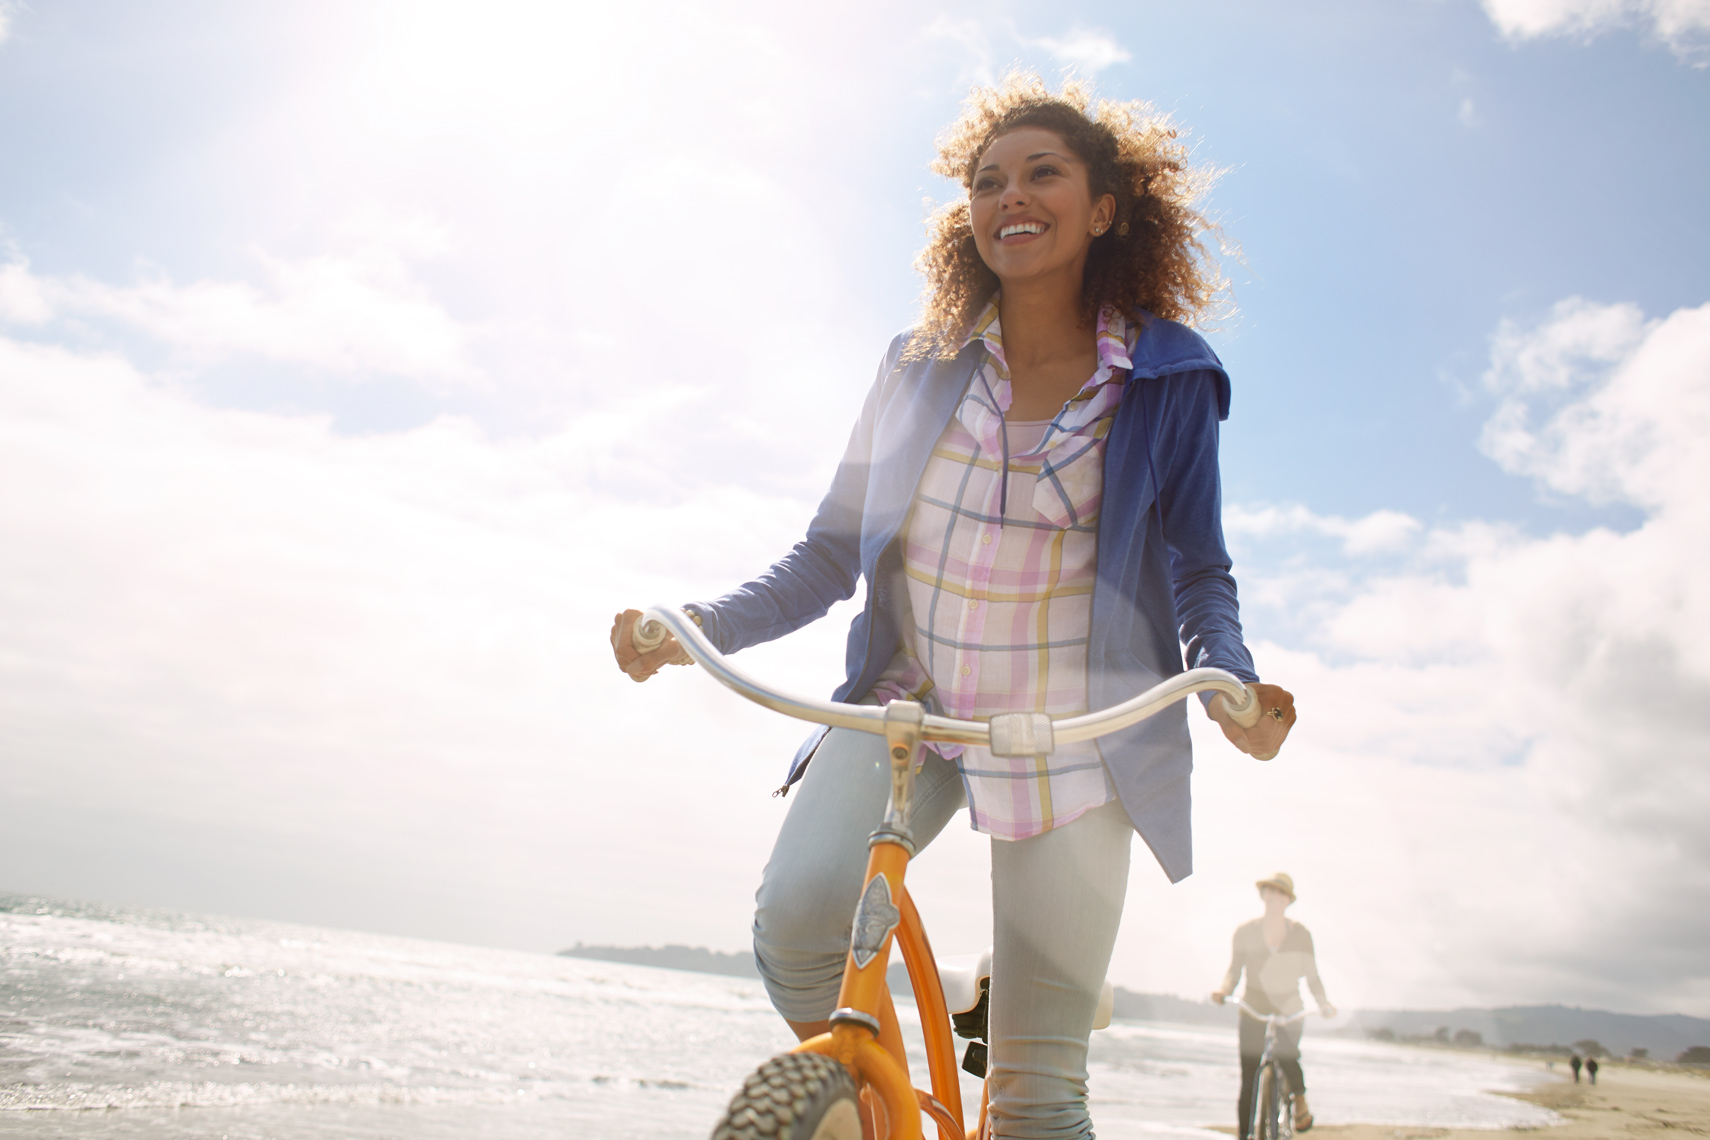 San Francisco Bay Area Advertising, Lifestyle, Commercial Photographer, african american female riding bike on beach, millenials